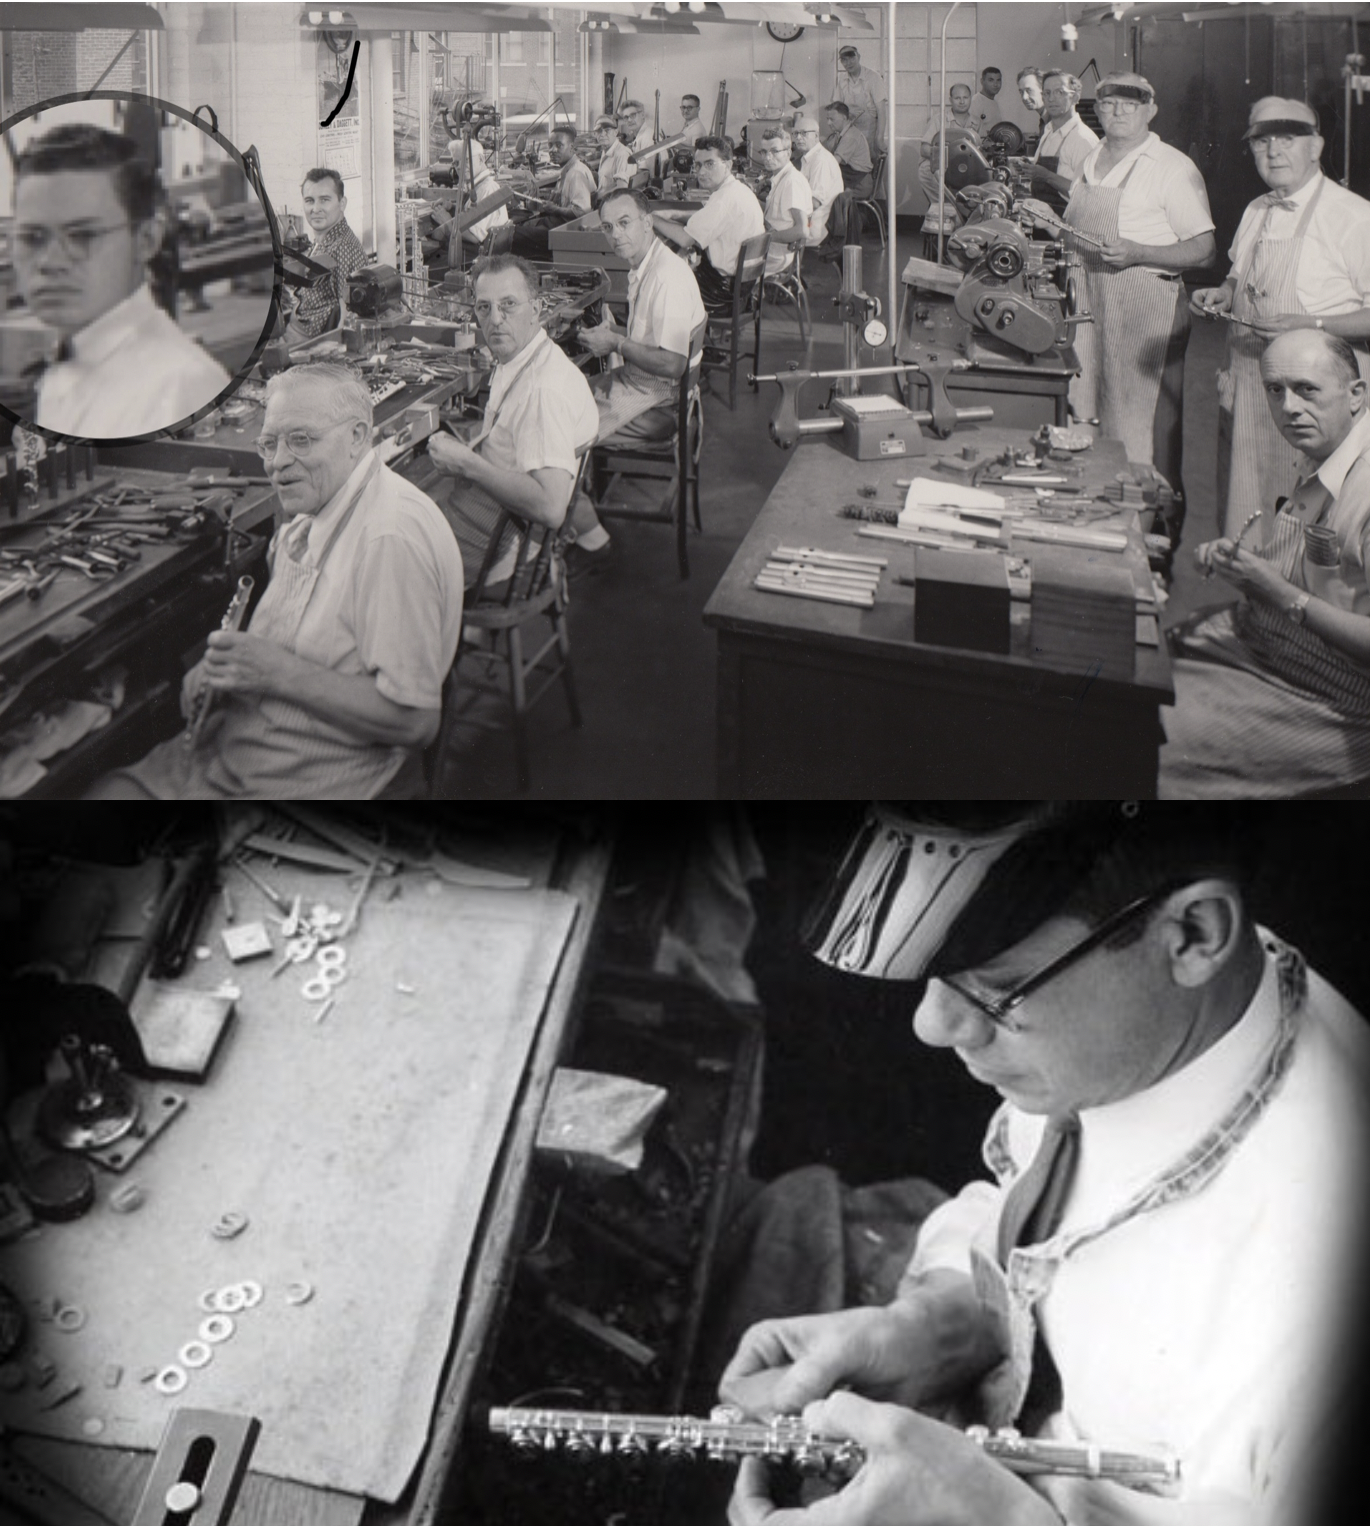 """1940 - During the war years, it is very difficult to obtain precious metals. In order to continue making instruments, the Wm. S. Haynes Company obtains government contracts. The Wm. Haynes Company still makes flutes for military bands and orchestras around the world.1941 – Lewis """"Lew"""" Deveau (circled in photo) joins the company and eventually becomes President and owner. -"""